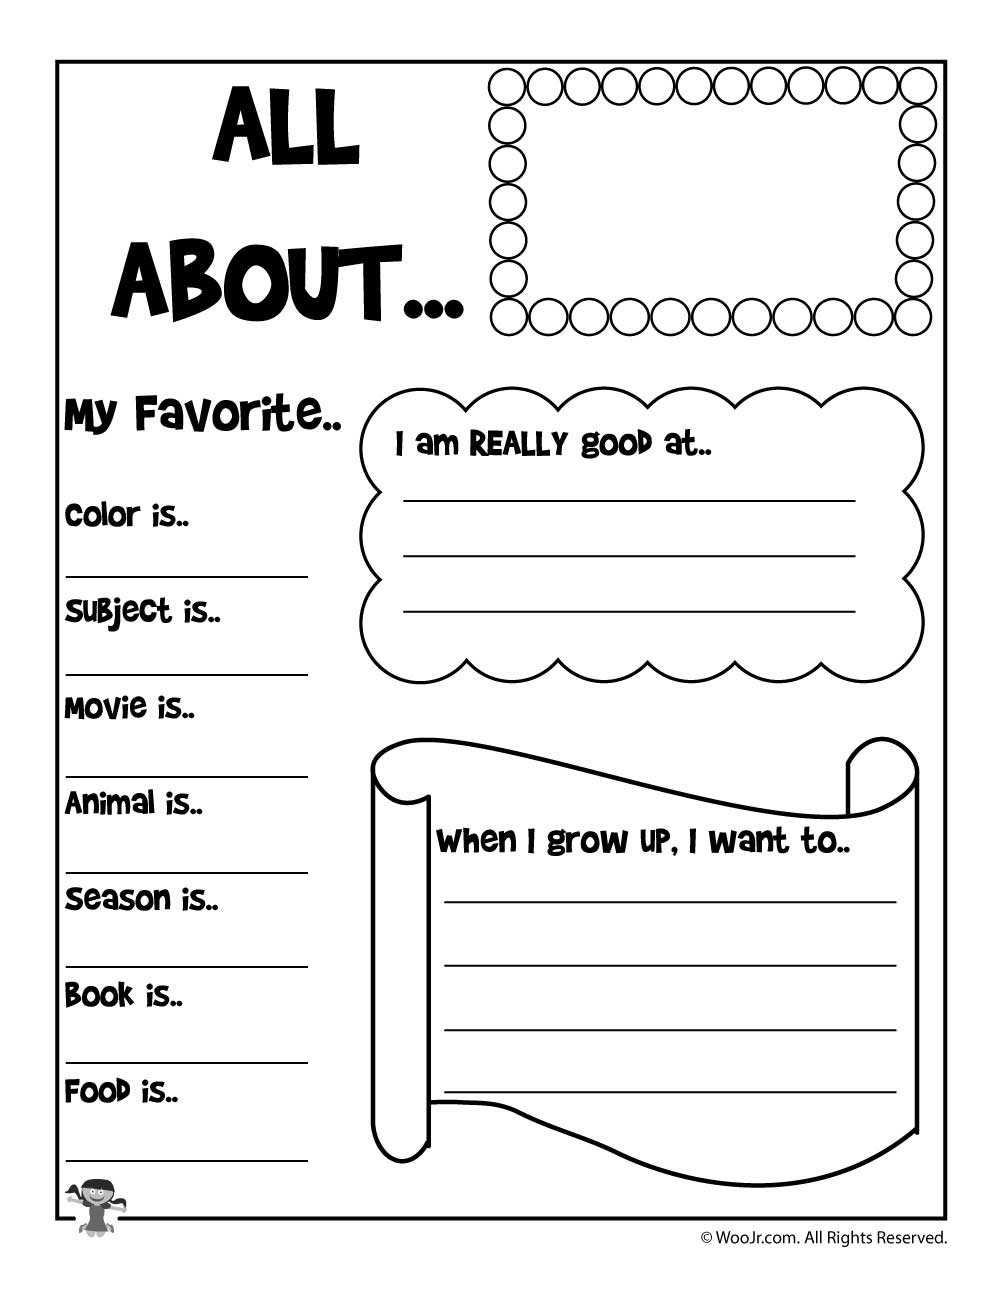 all about me printable worksheet woo jr kids activities. Black Bedroom Furniture Sets. Home Design Ideas